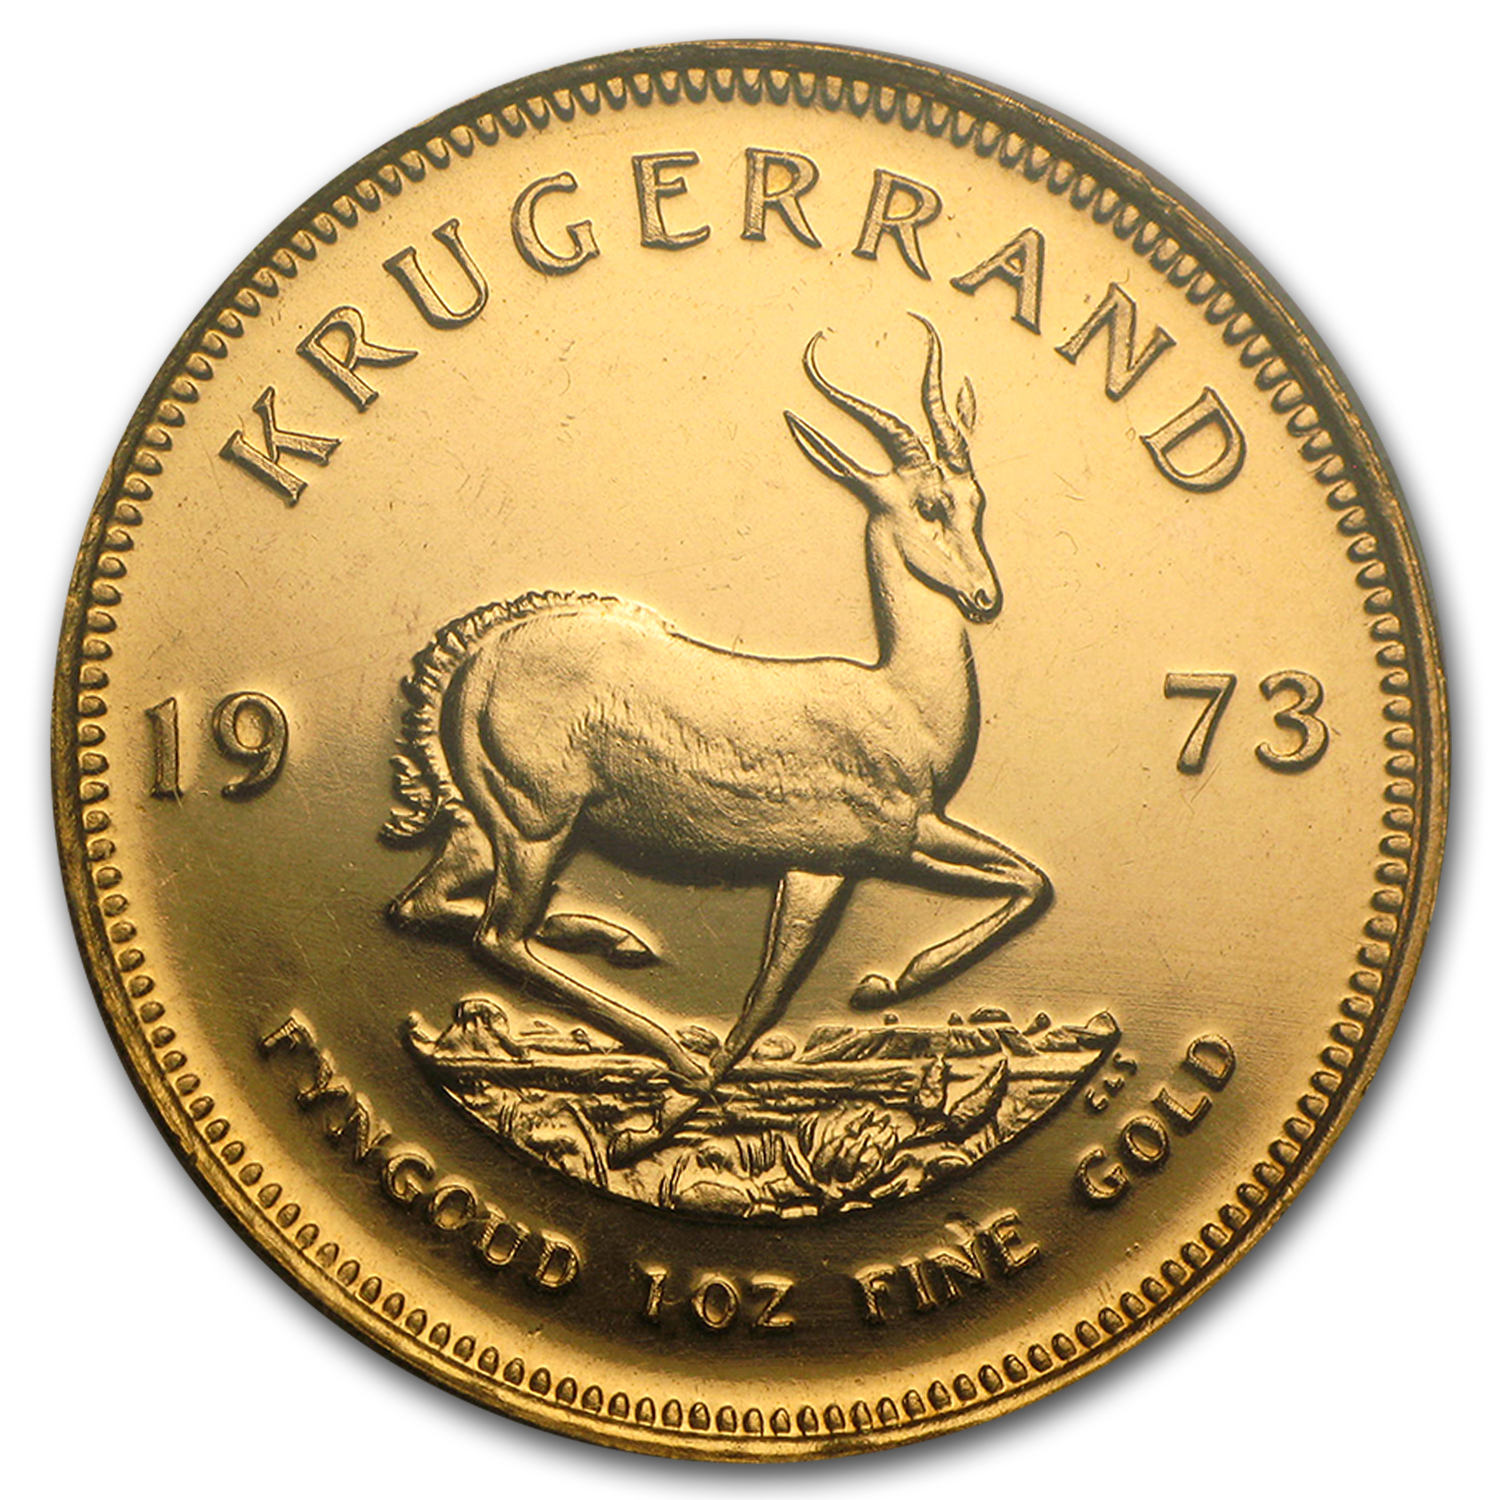 1973 1 oz Gold South African Krugerrand (Proof)